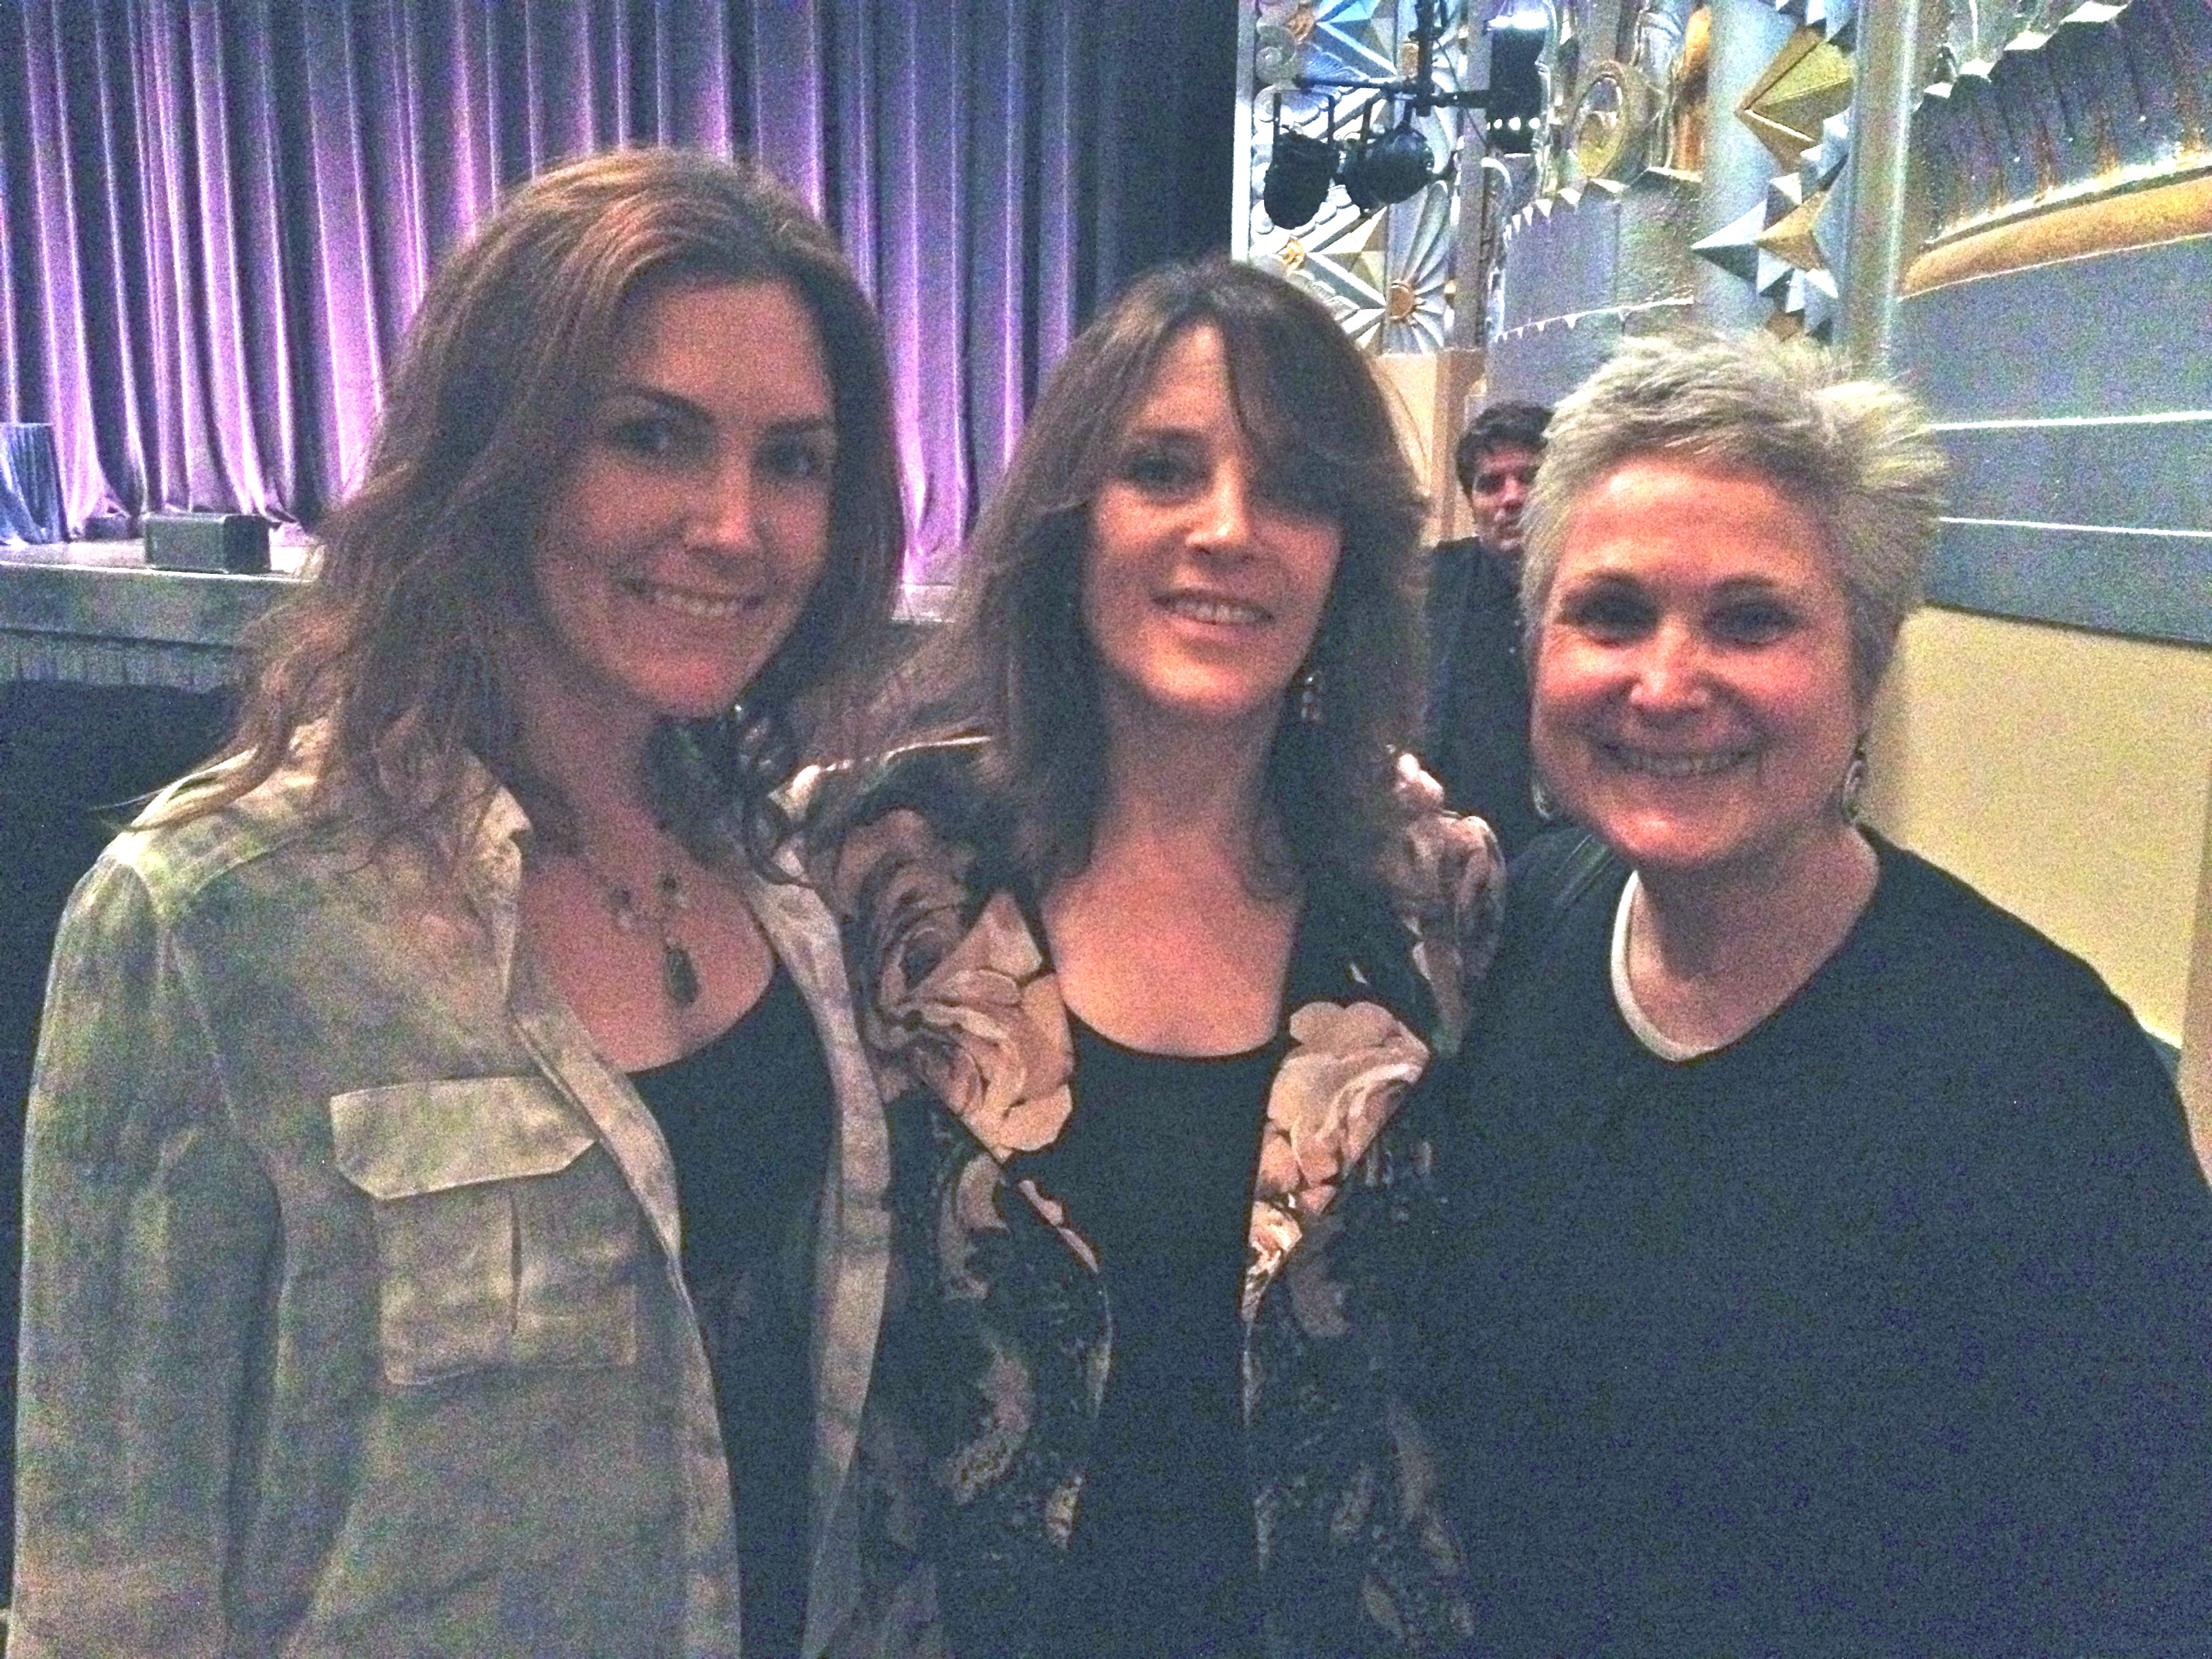 My daughter Paloma and I flanking super master teacher Marianne Williamson after one of her Monday night lectures at the Saban Theater